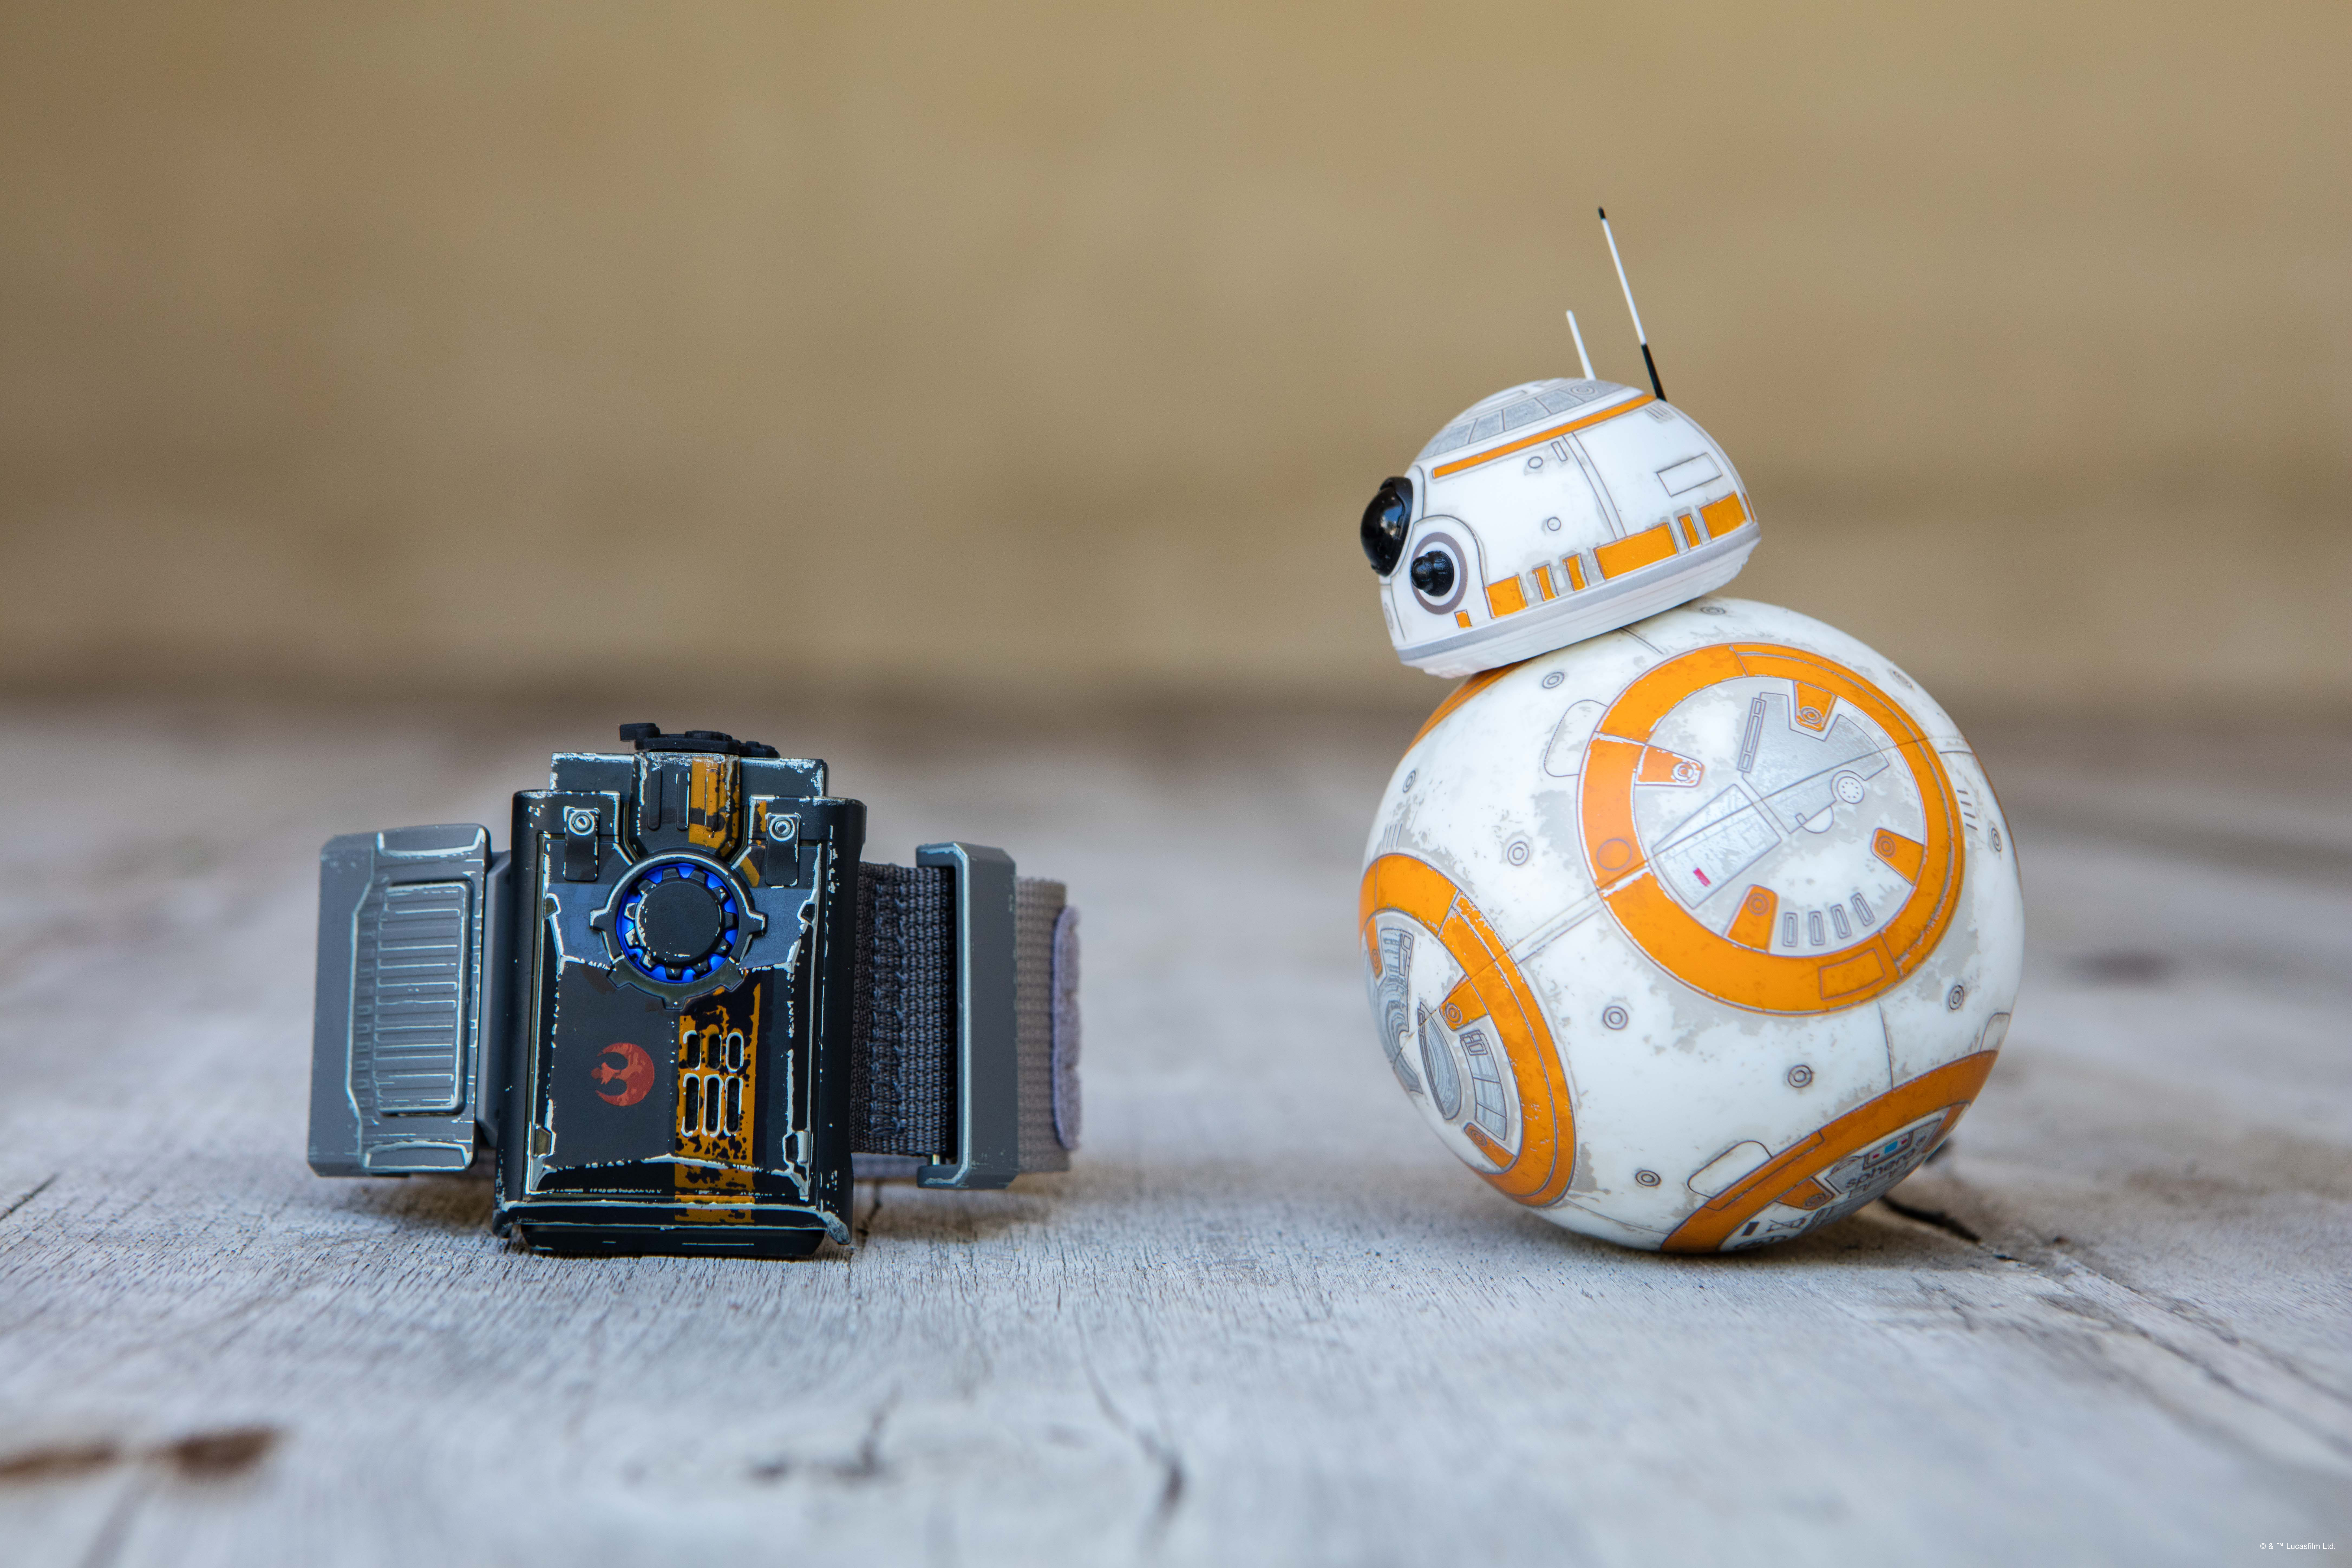 May the Force Be With You with the Force Band by Sphero and Special Edition Battle-Worn BB-8. Read the full review @ GagenGirls.com